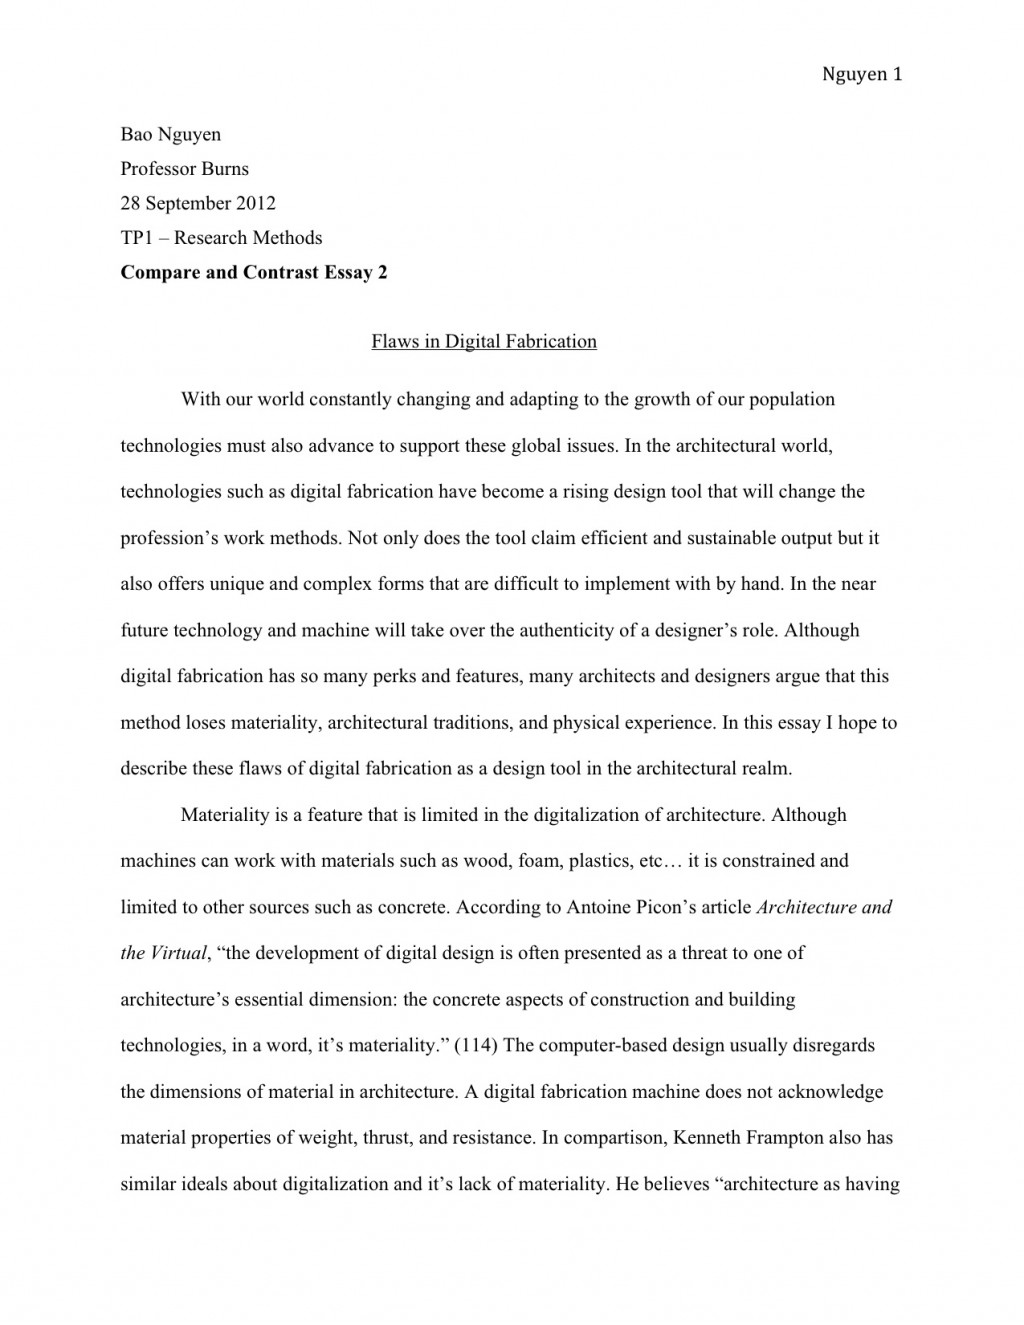 005 How To Write An Essay Example Tp1 3 Shocking About Yourself Conclusion Pdf Academic Fast Large